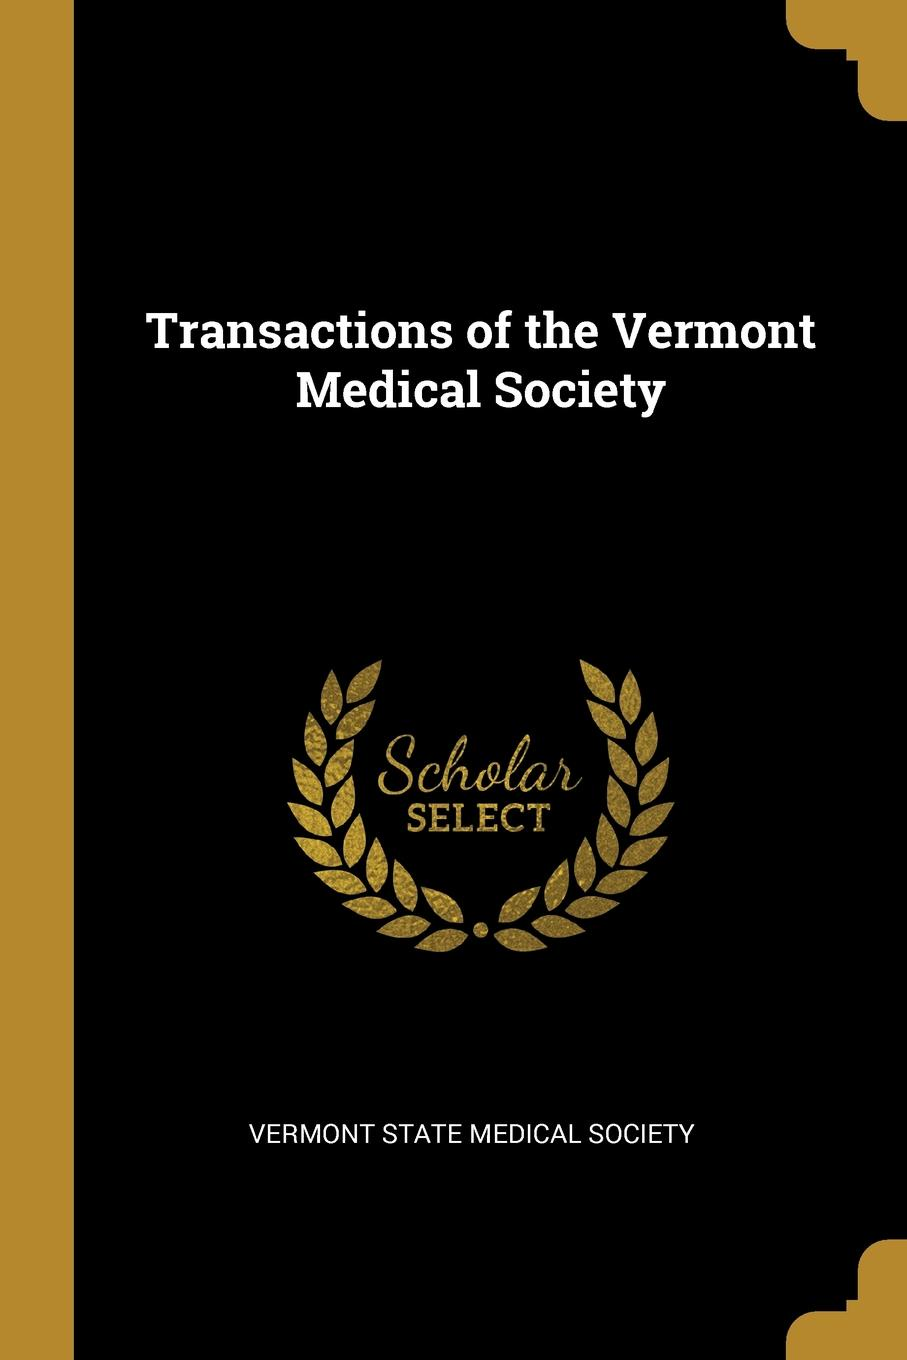 Vermont State Medical Society Transactions of the Vermont Medical Society